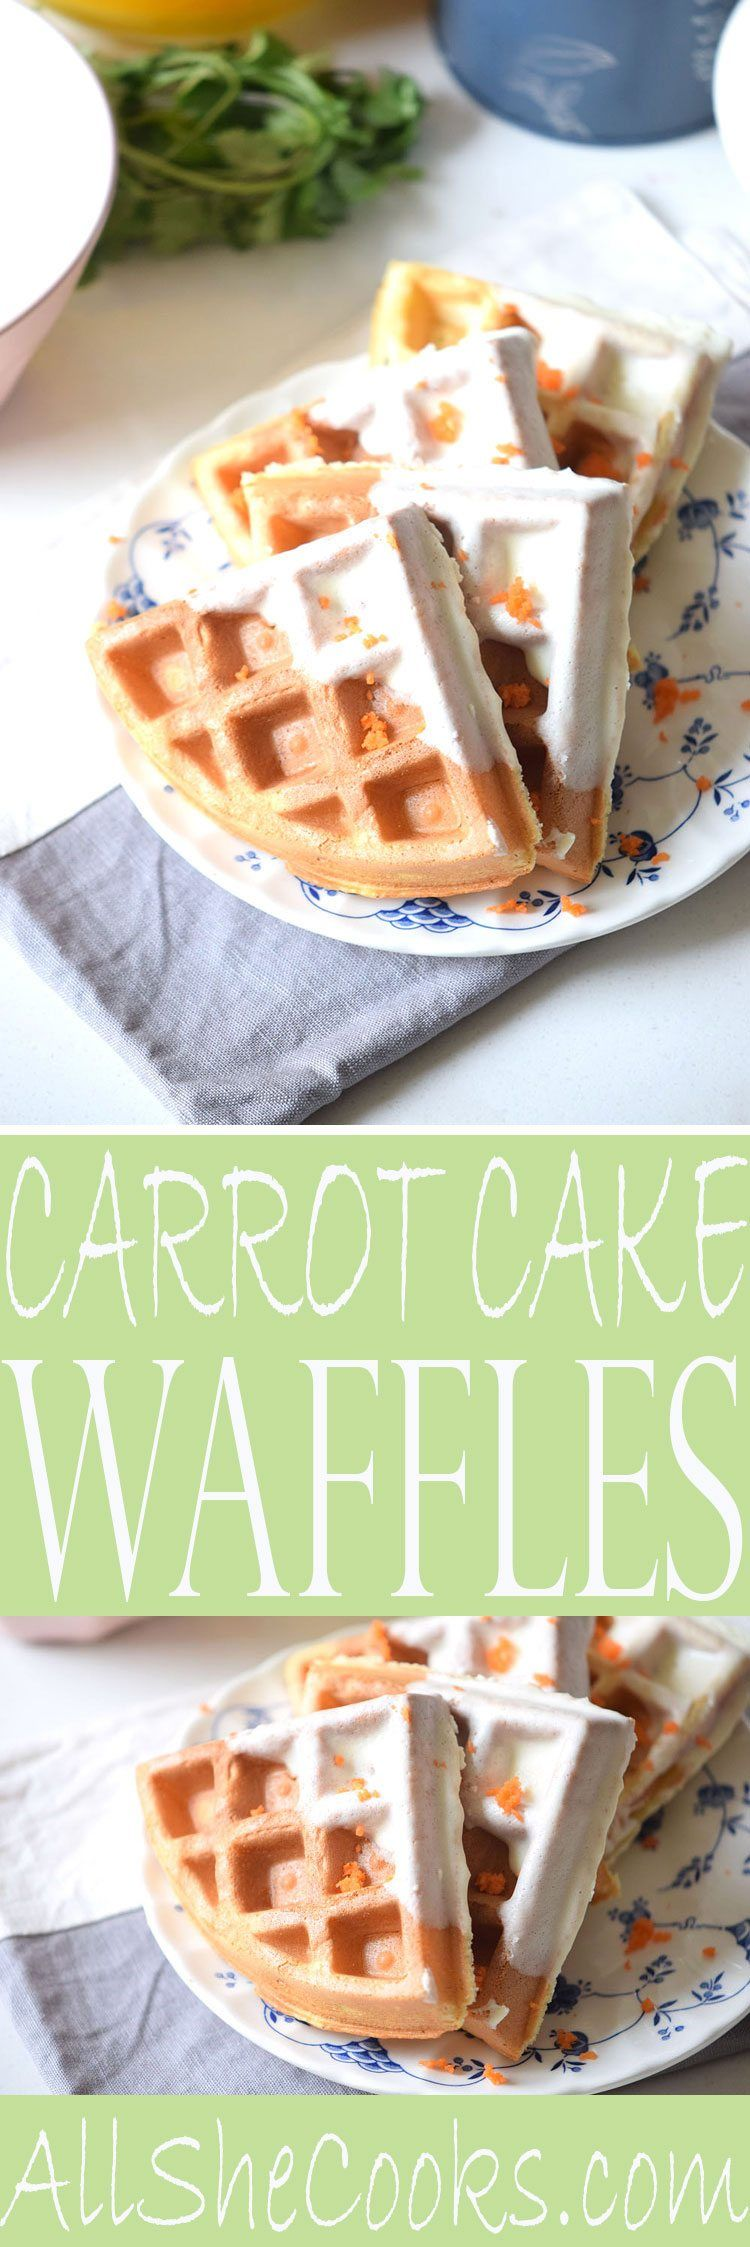 Carrot Cake Waffles - try this easy waffle recipe for breakfast this weekend. Quick and easy recipe.